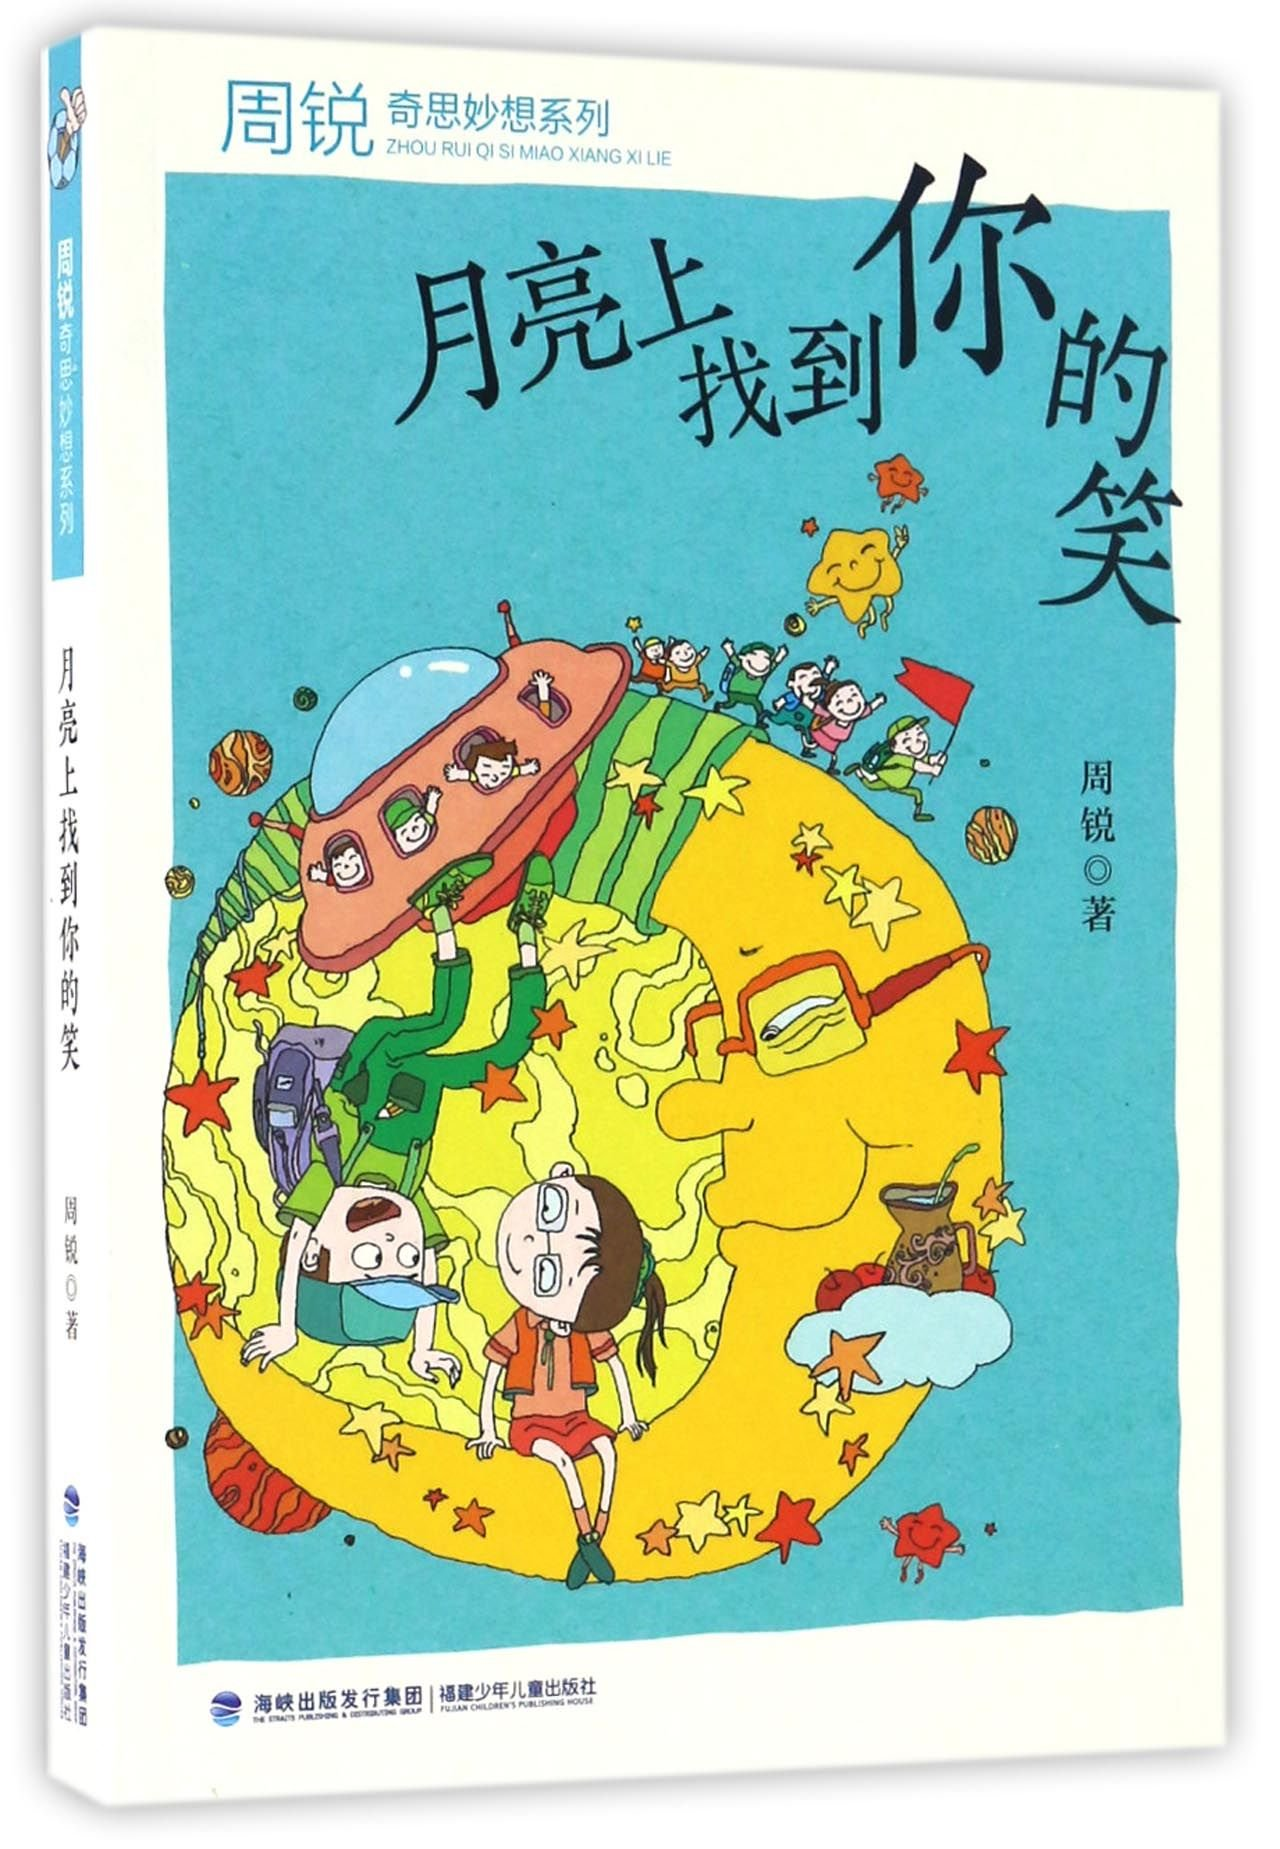 Find Your Smile on the Moon (Chinese Edition) pdf